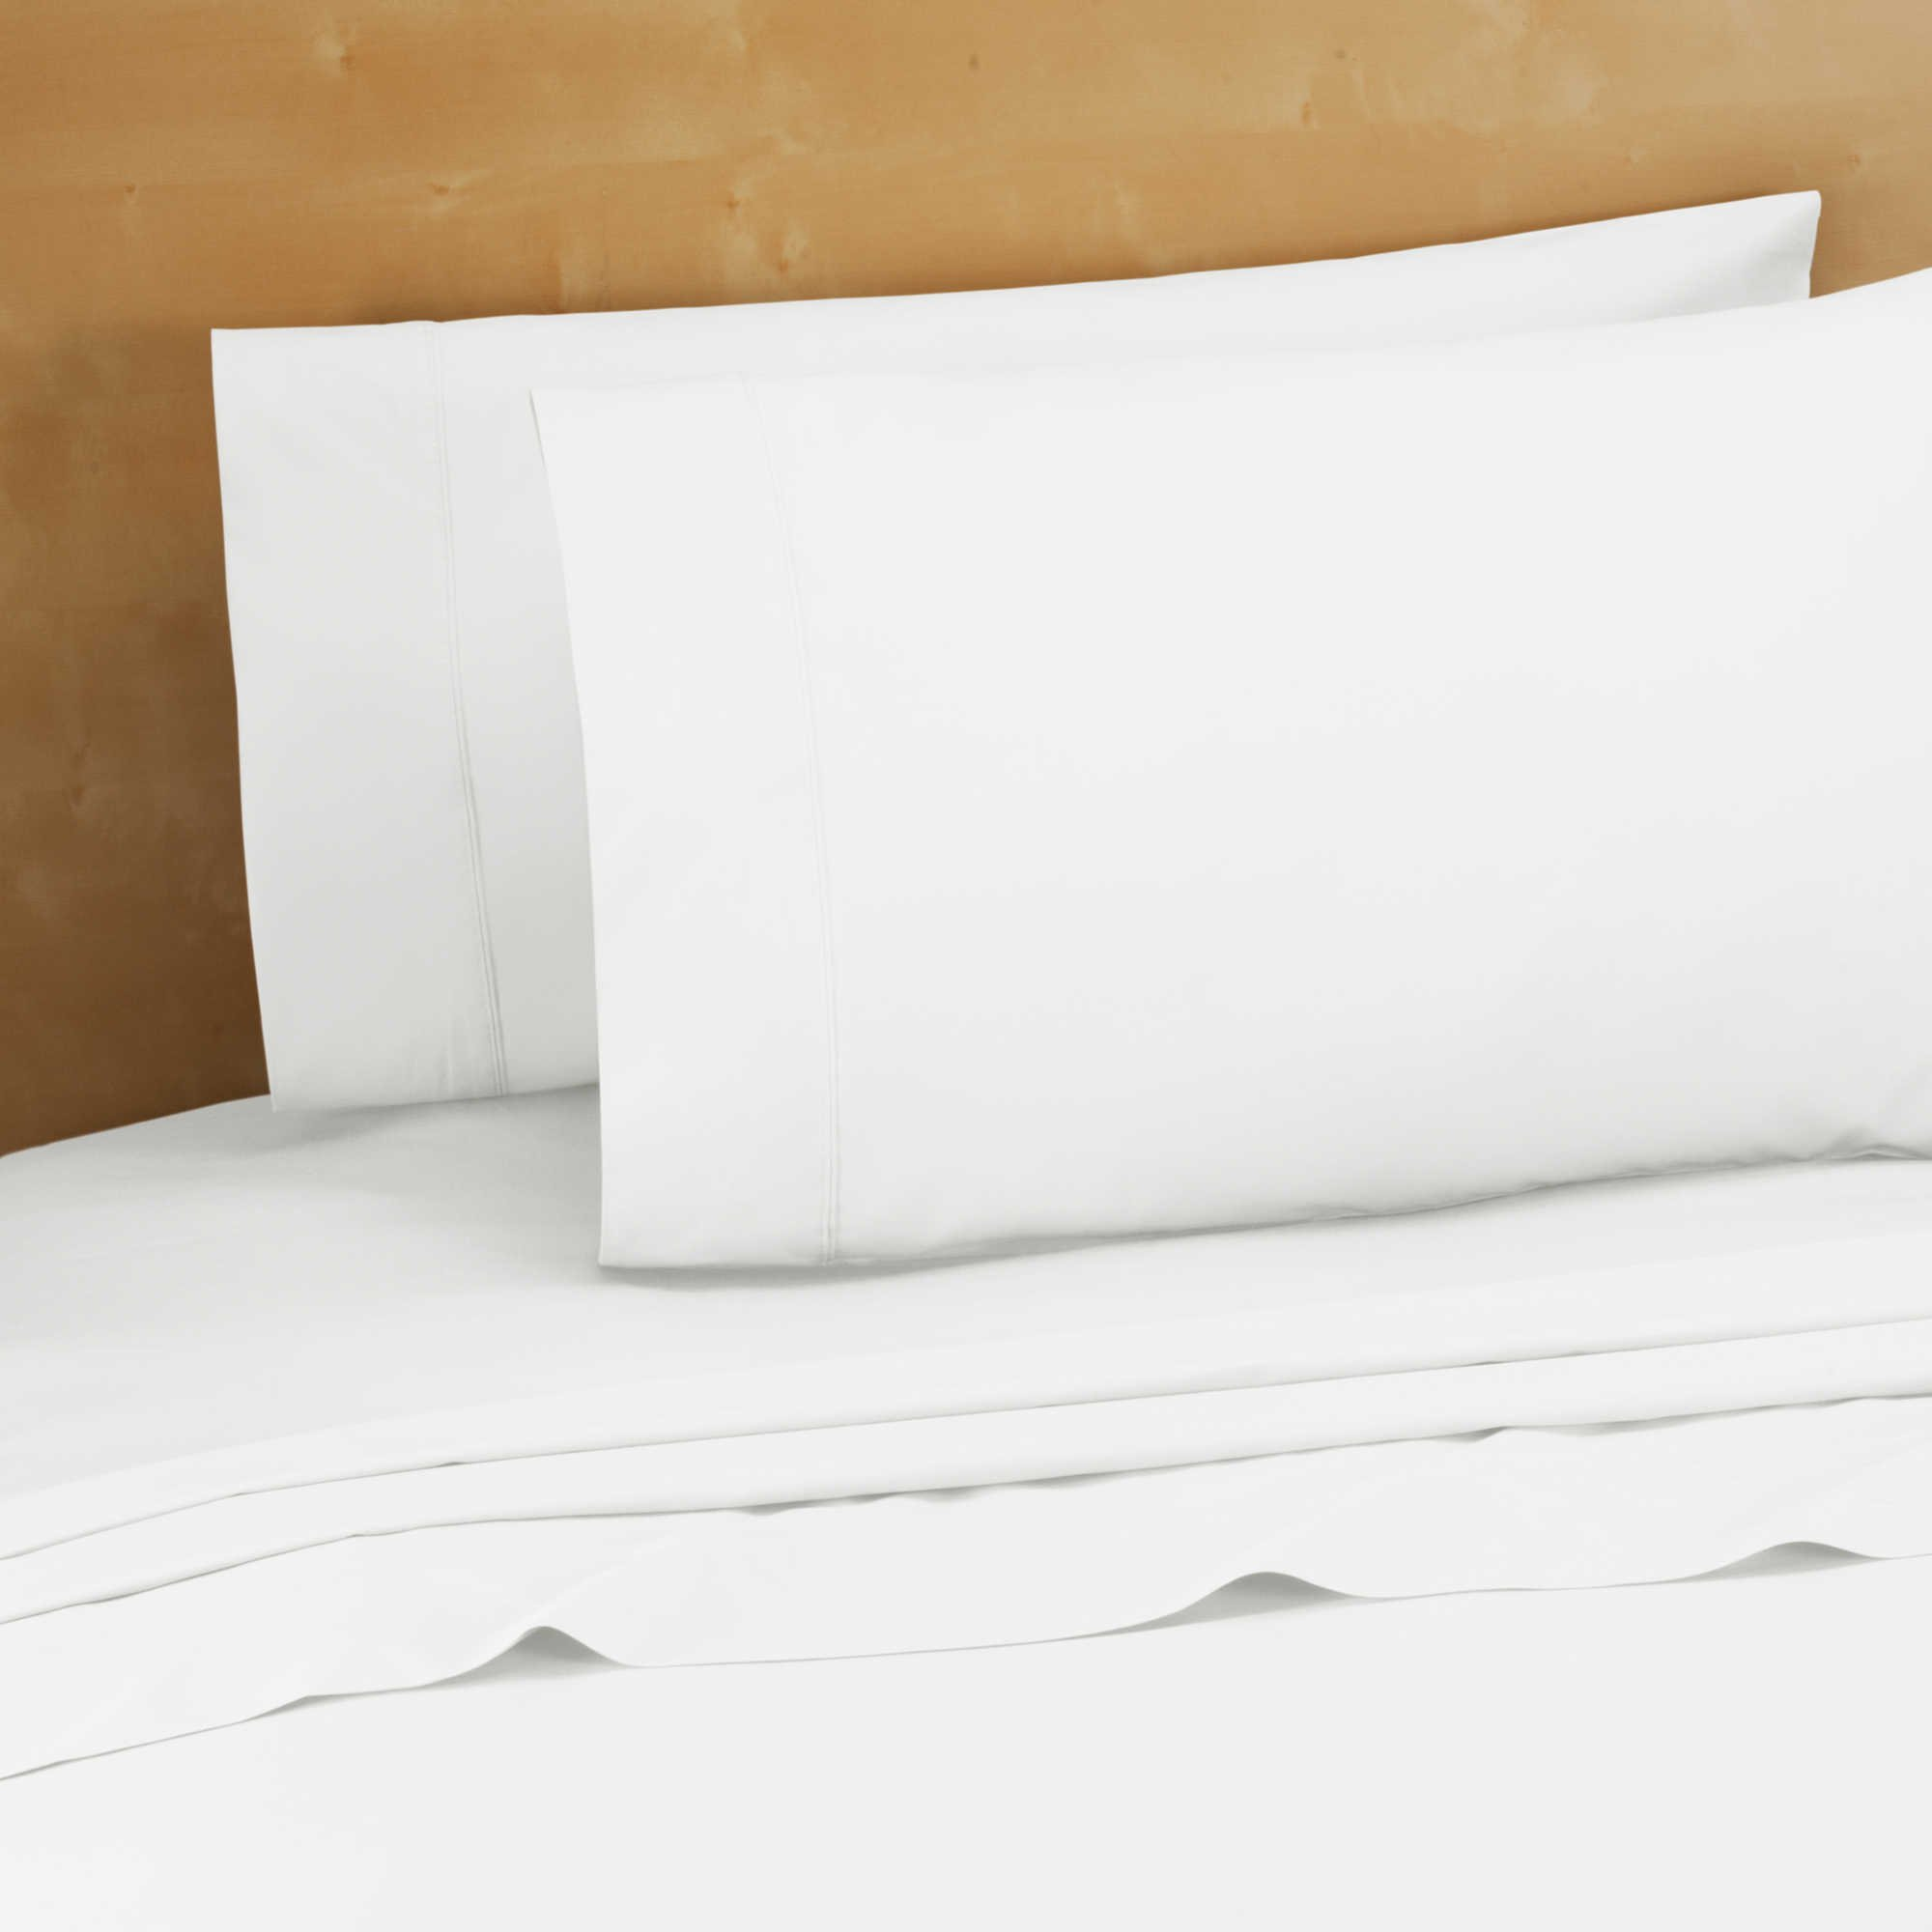 24 Pcs King Flat Sheet White (108''x110'') T-200 Percale Hotel Linen (Available in Bulk/ 2-Dozens) (King) by Golden Mills (Image #1)